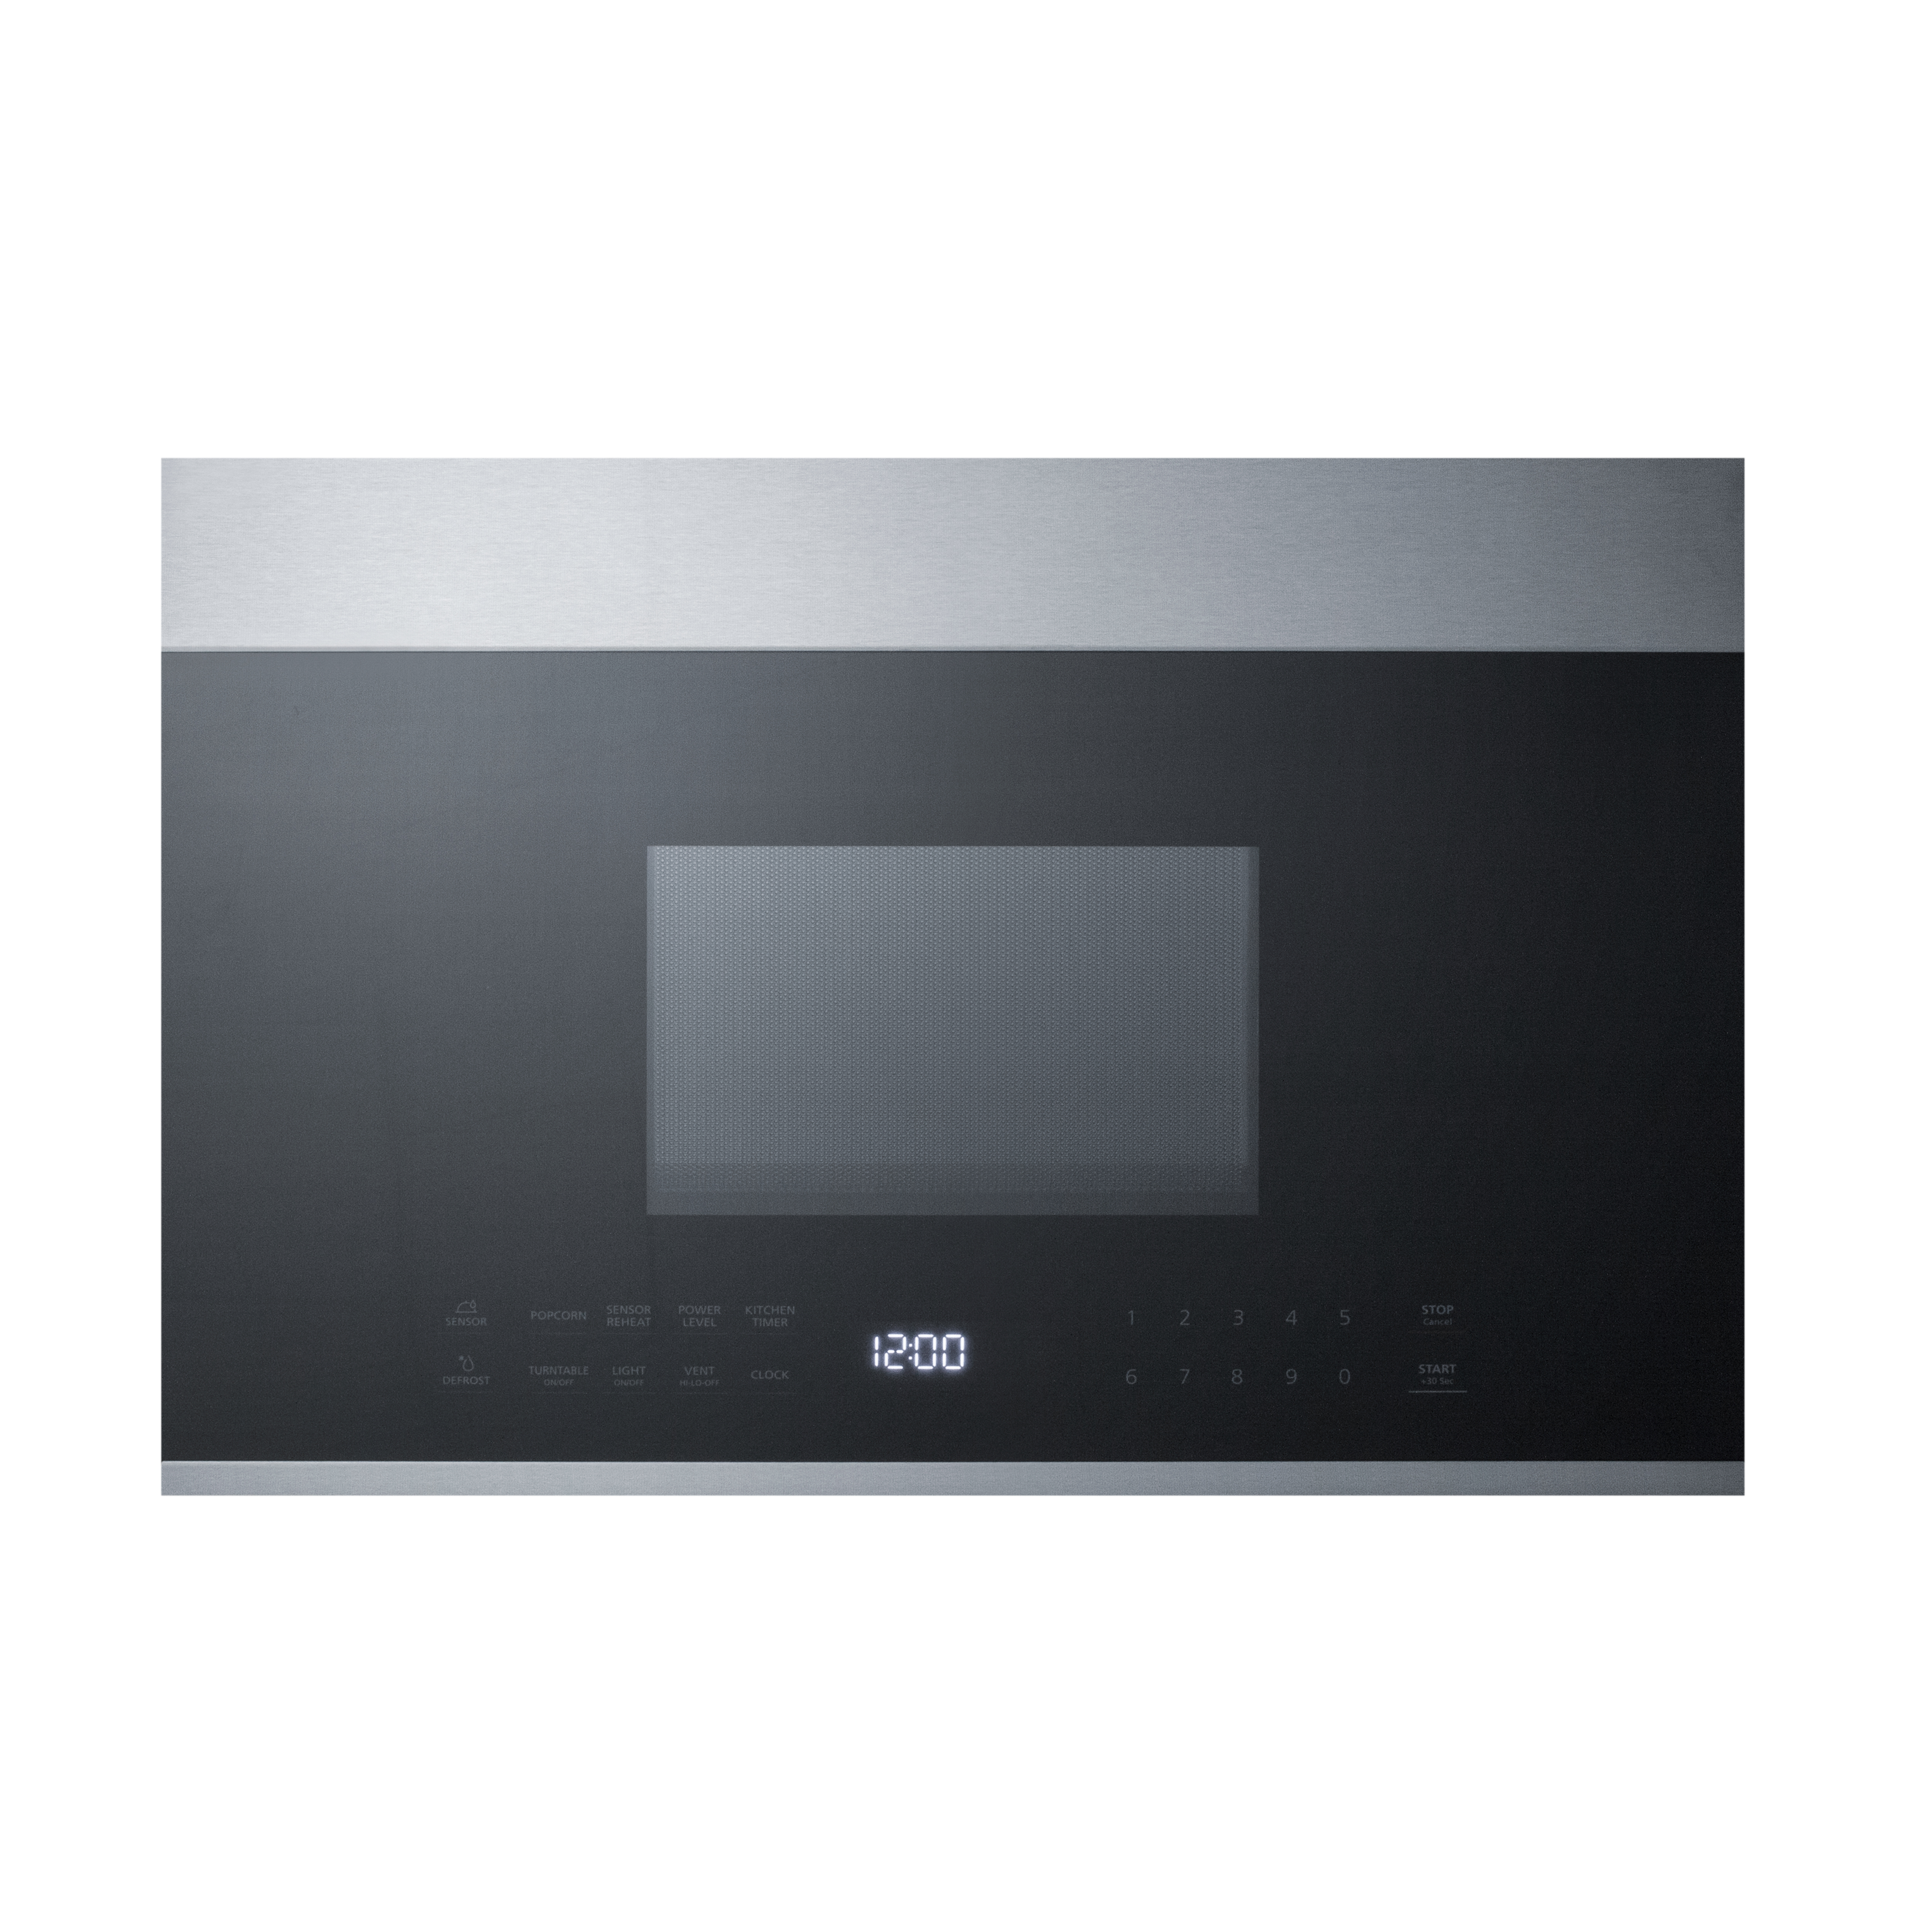 Summit Appliance MHOTR24SS microwave oven